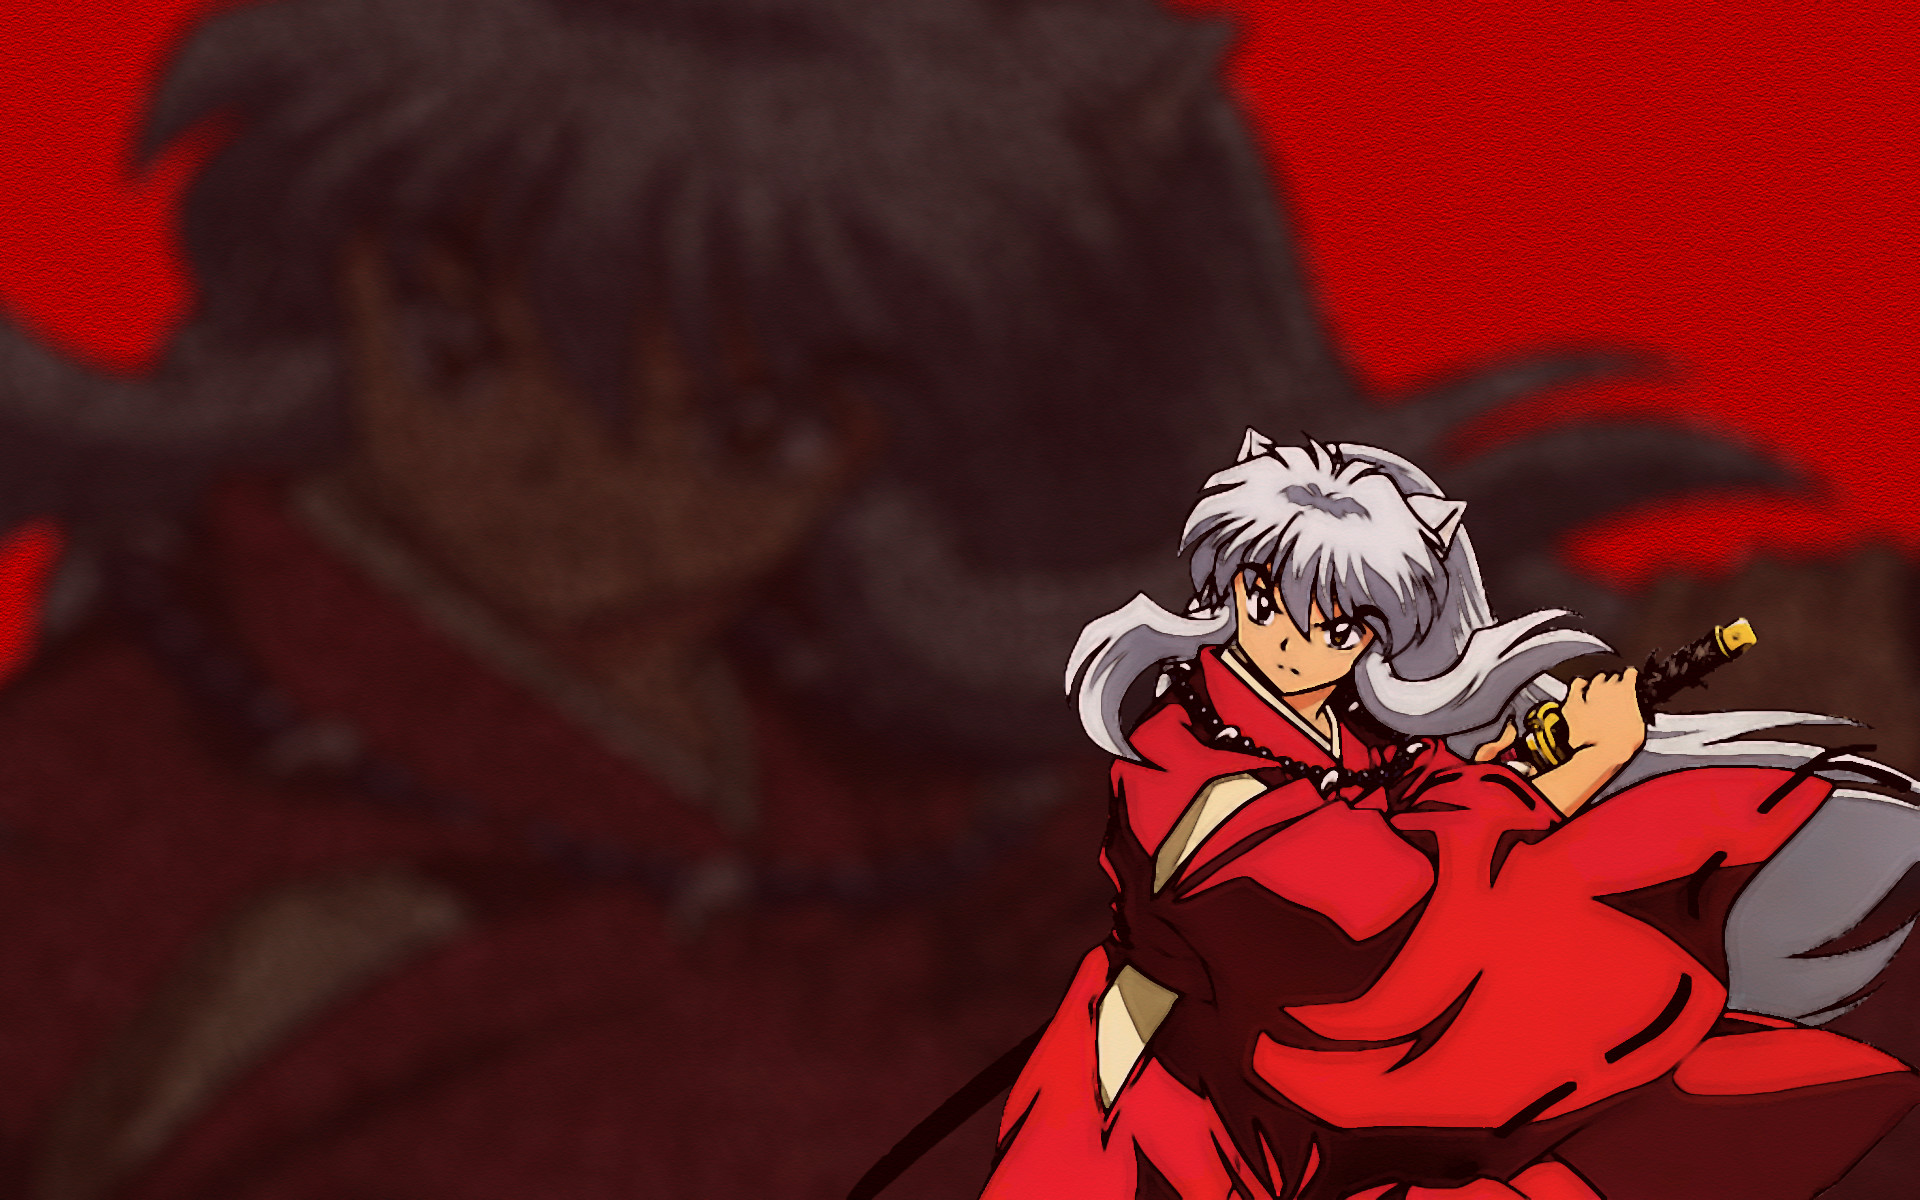 1920x1200 InuYasha Wallpaper 27 - 1920 X 1200